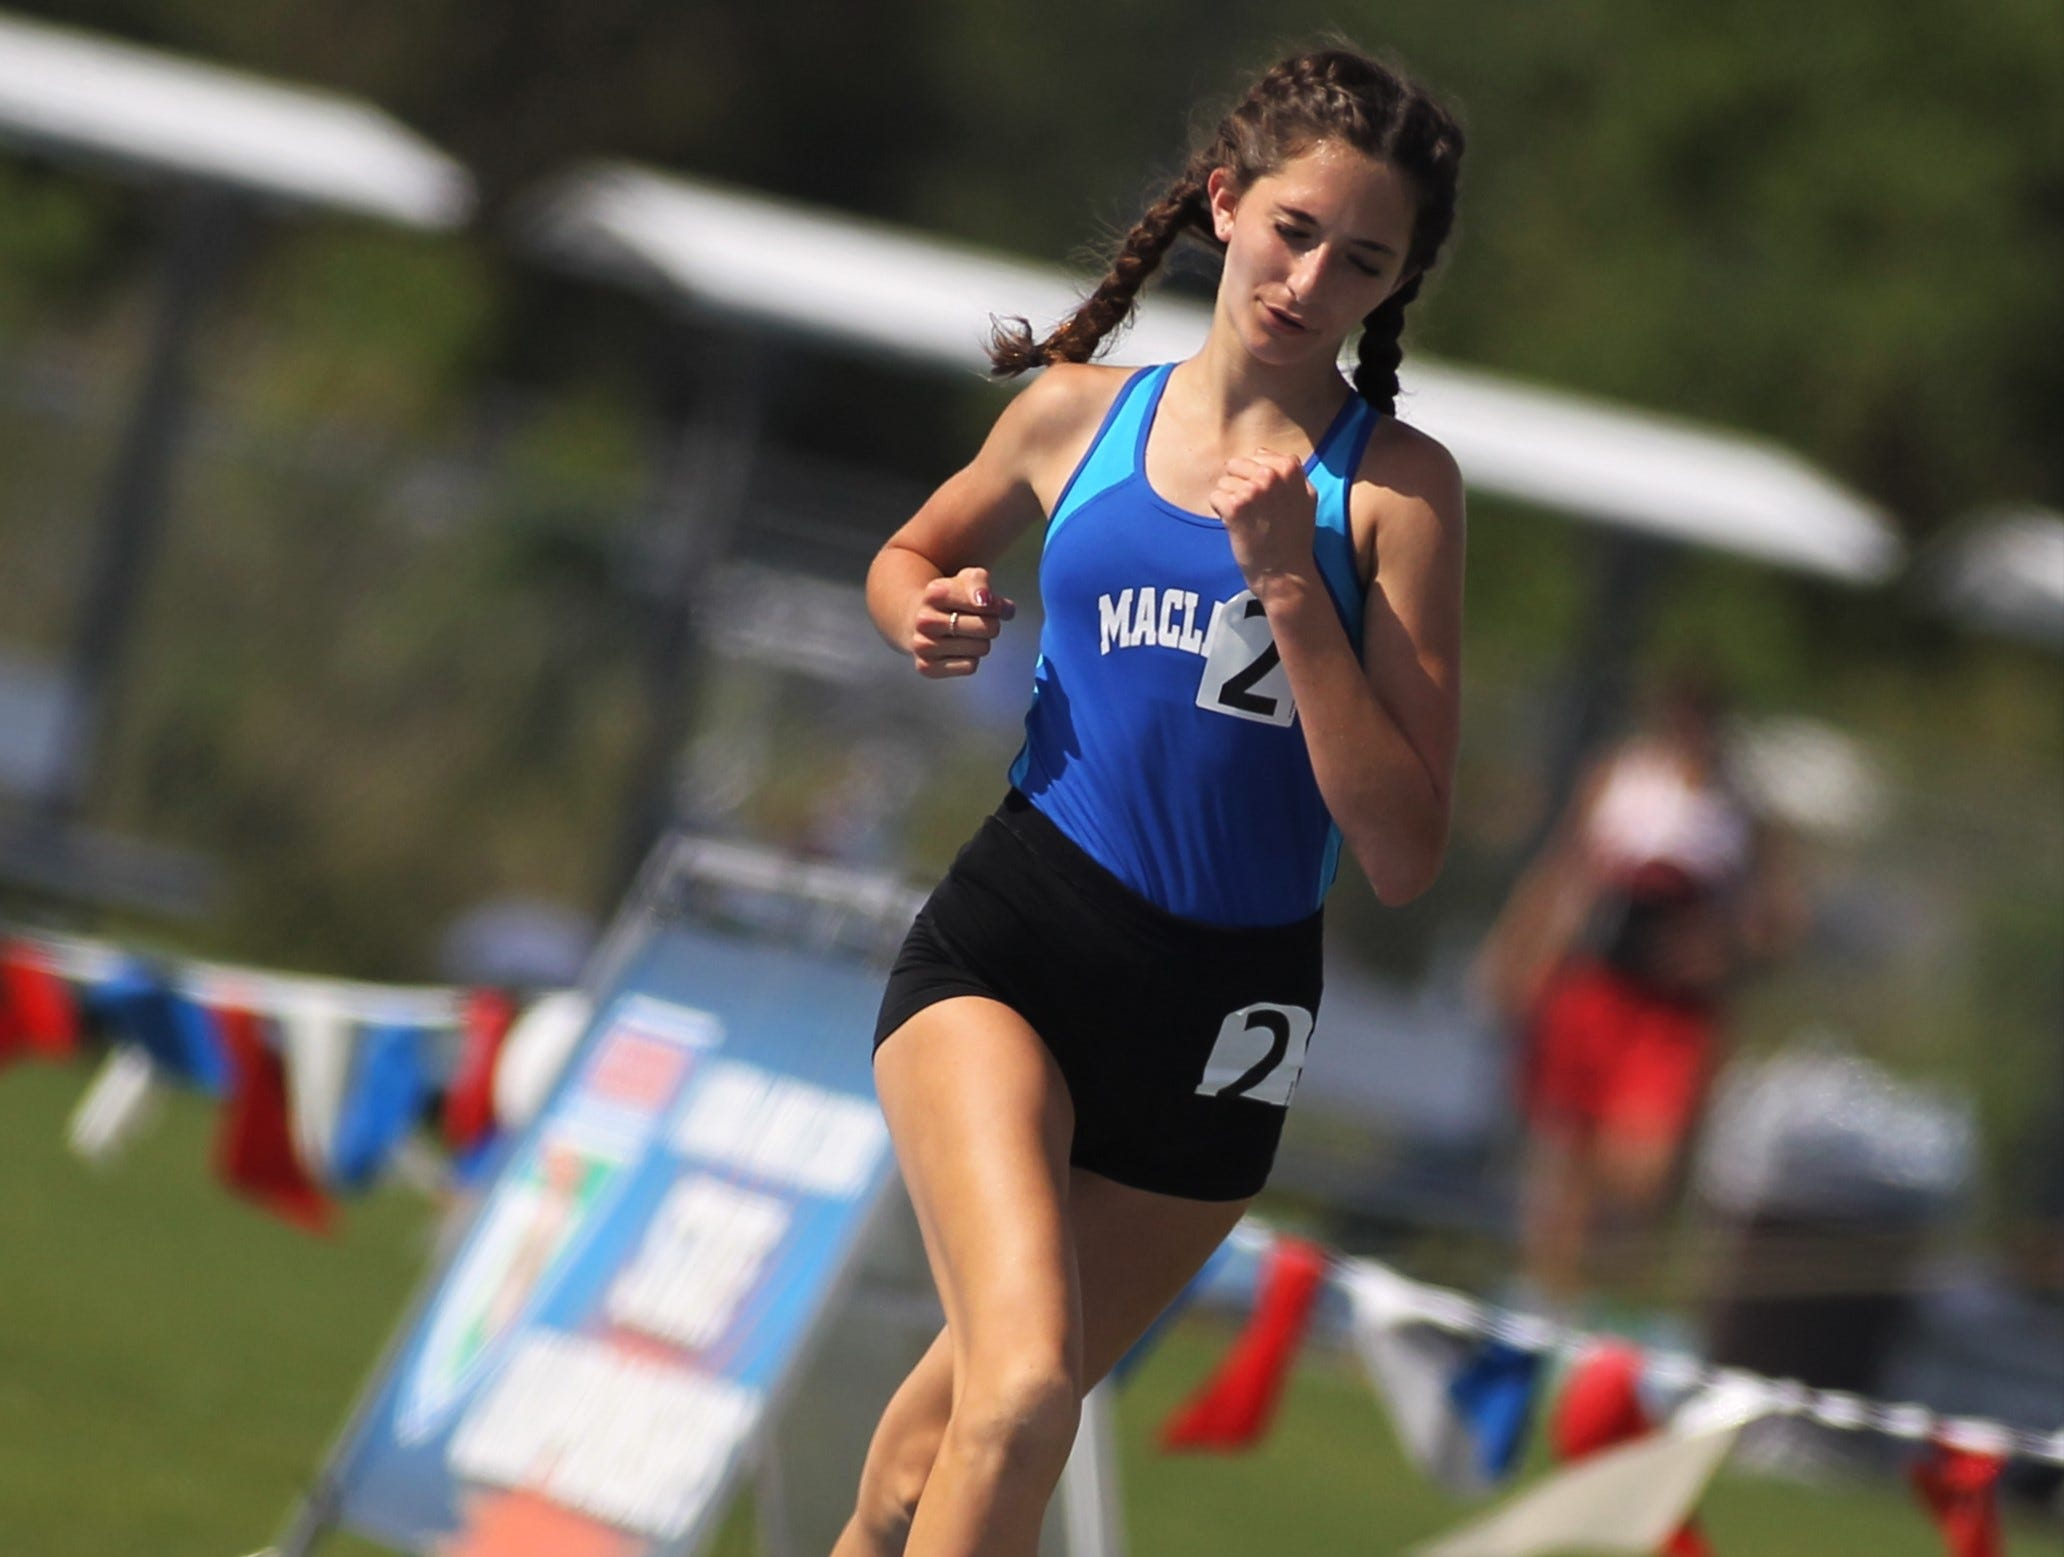 Maclay eighth-grader Ella Porcher took second in the Class 1A 1600m run during the FHSAA Track and Field State Championships at UNF's Hodges Stadium in Jacksonville on May 4, 2019.